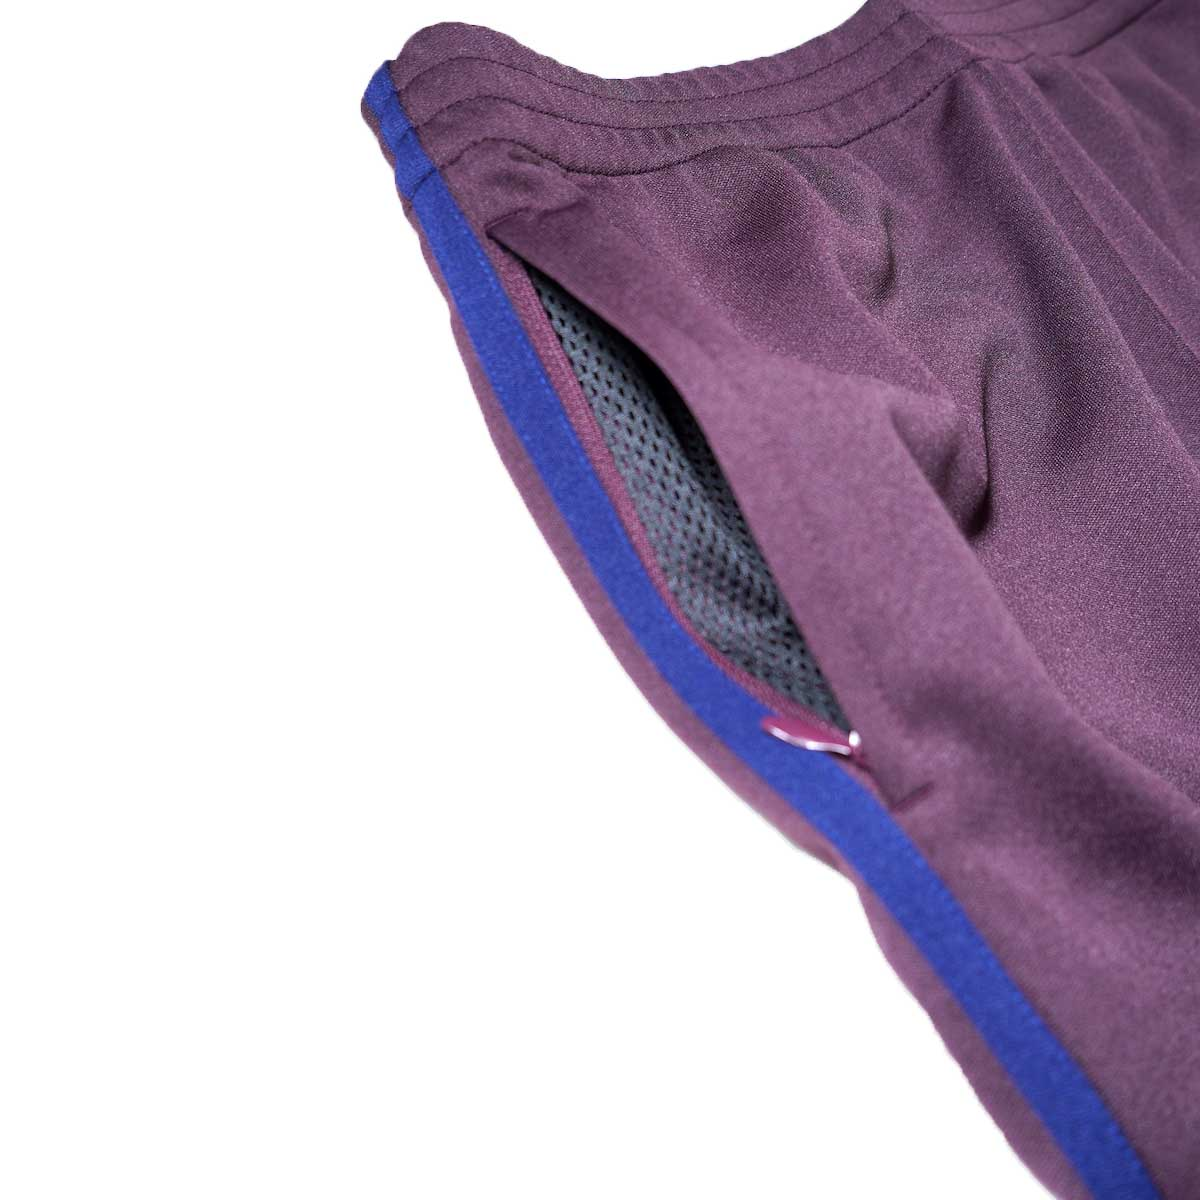 South2 West8 / Trainer Pants - Poly Smooth (Burgundy)サイドポケット